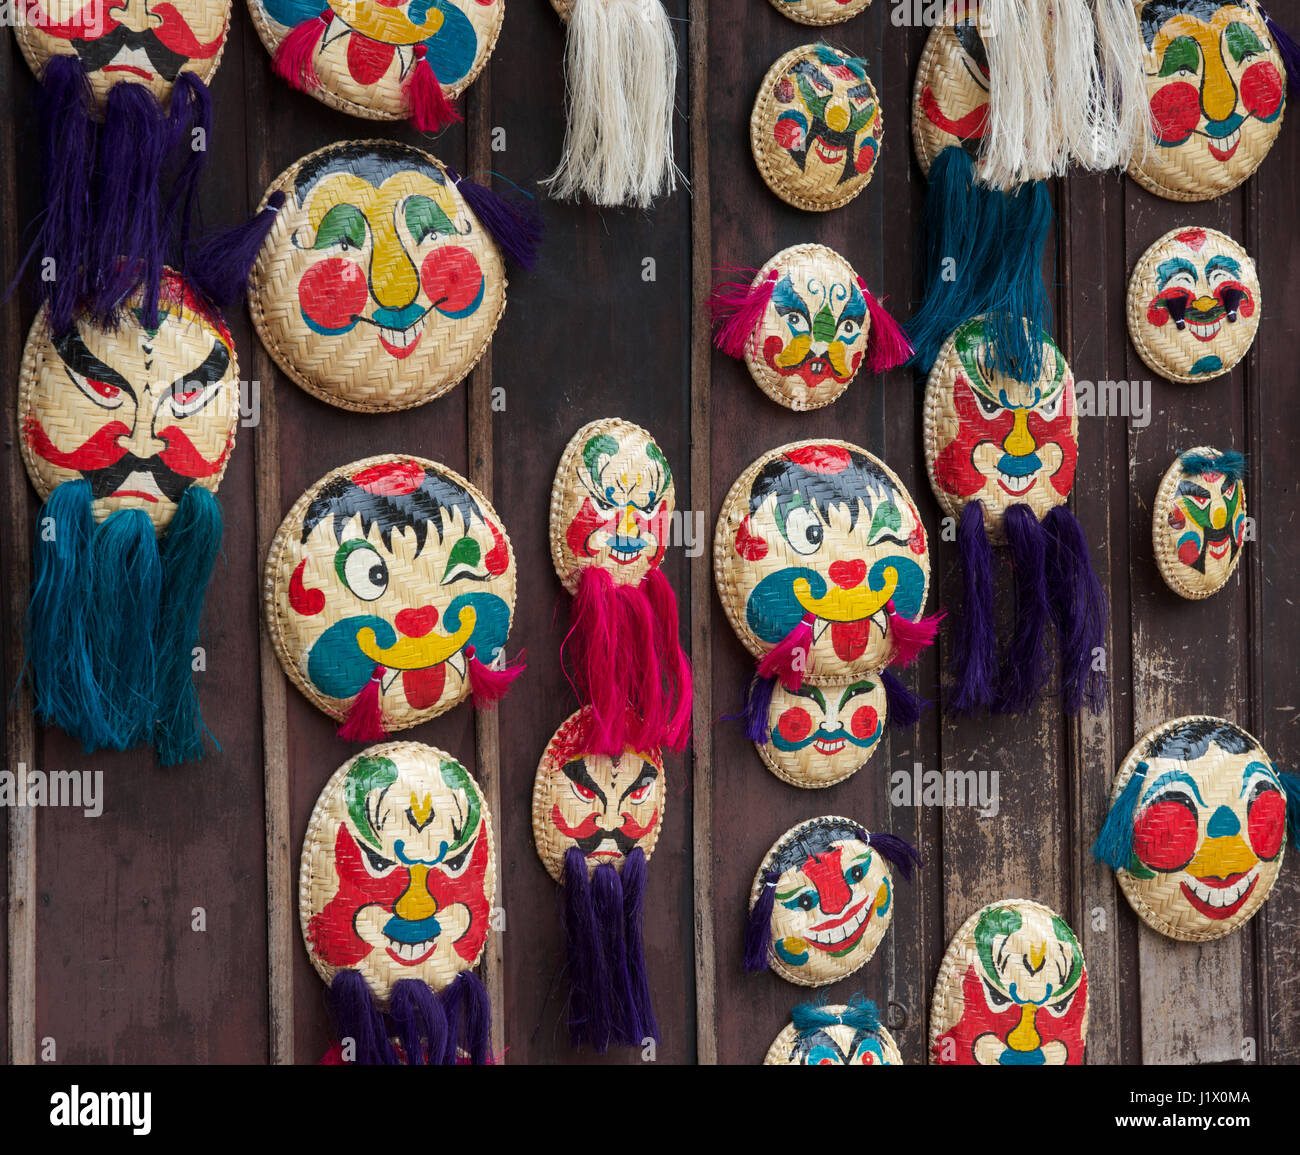 Vietnamese theatrical mask - Stock Image